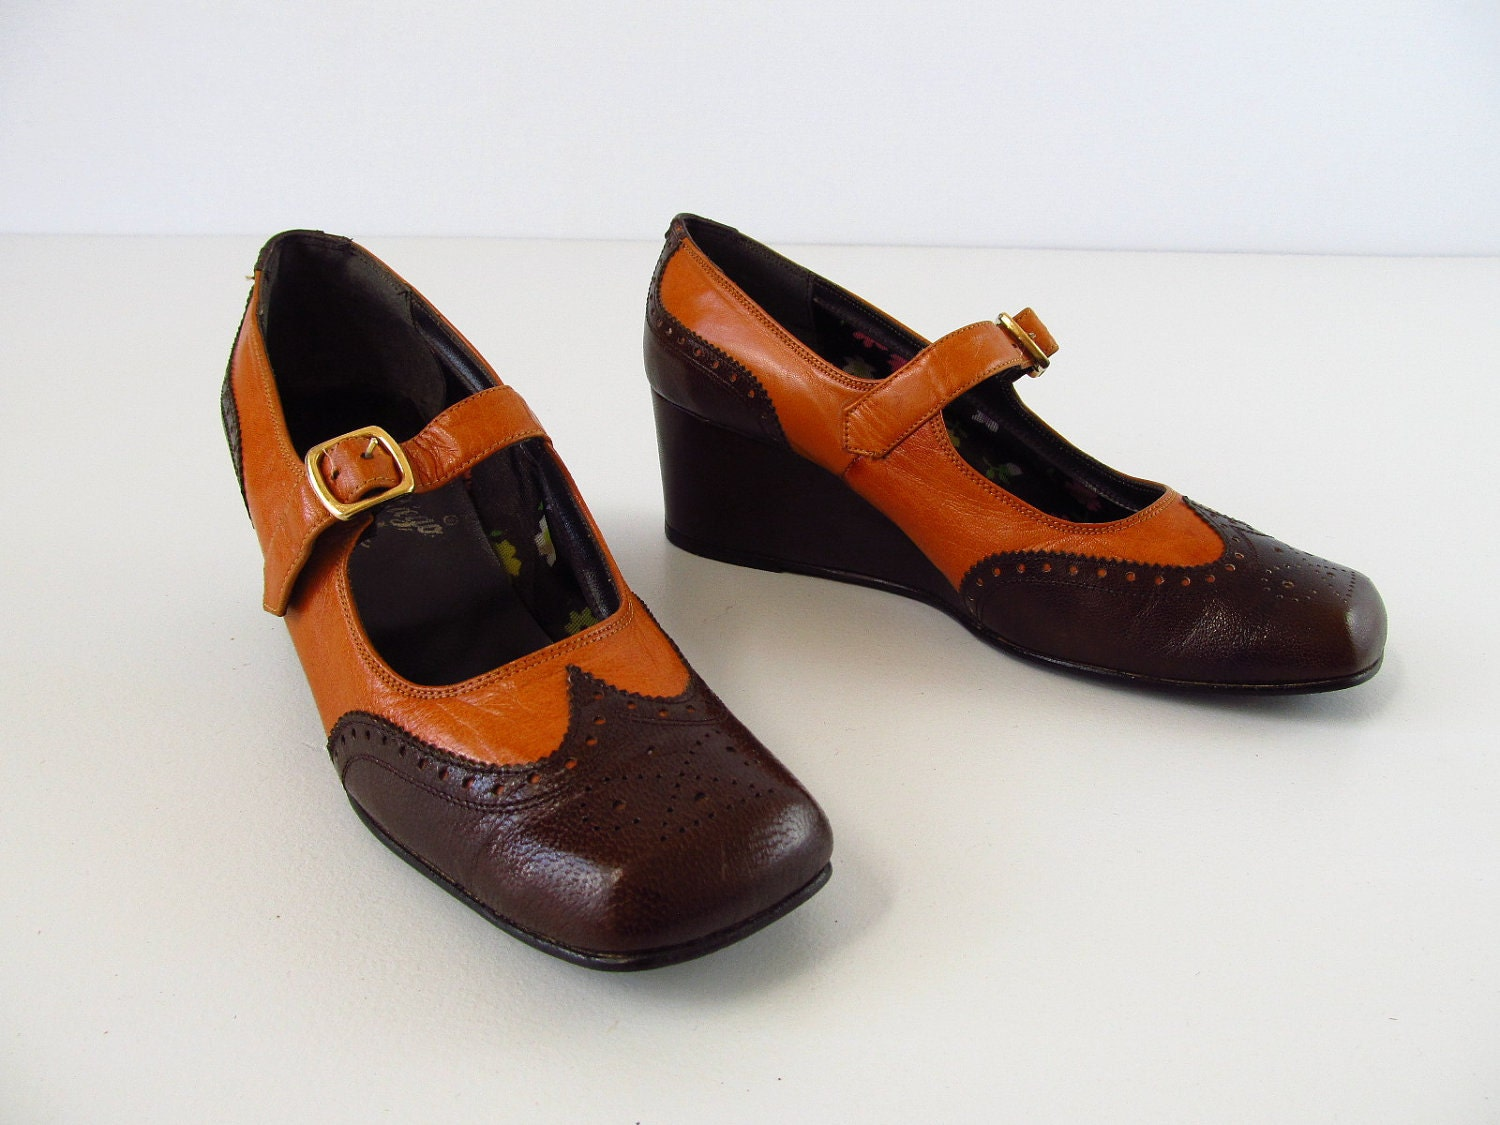 1970s mary jane wedges   vintage 70s brogue wedge shoes   size 6